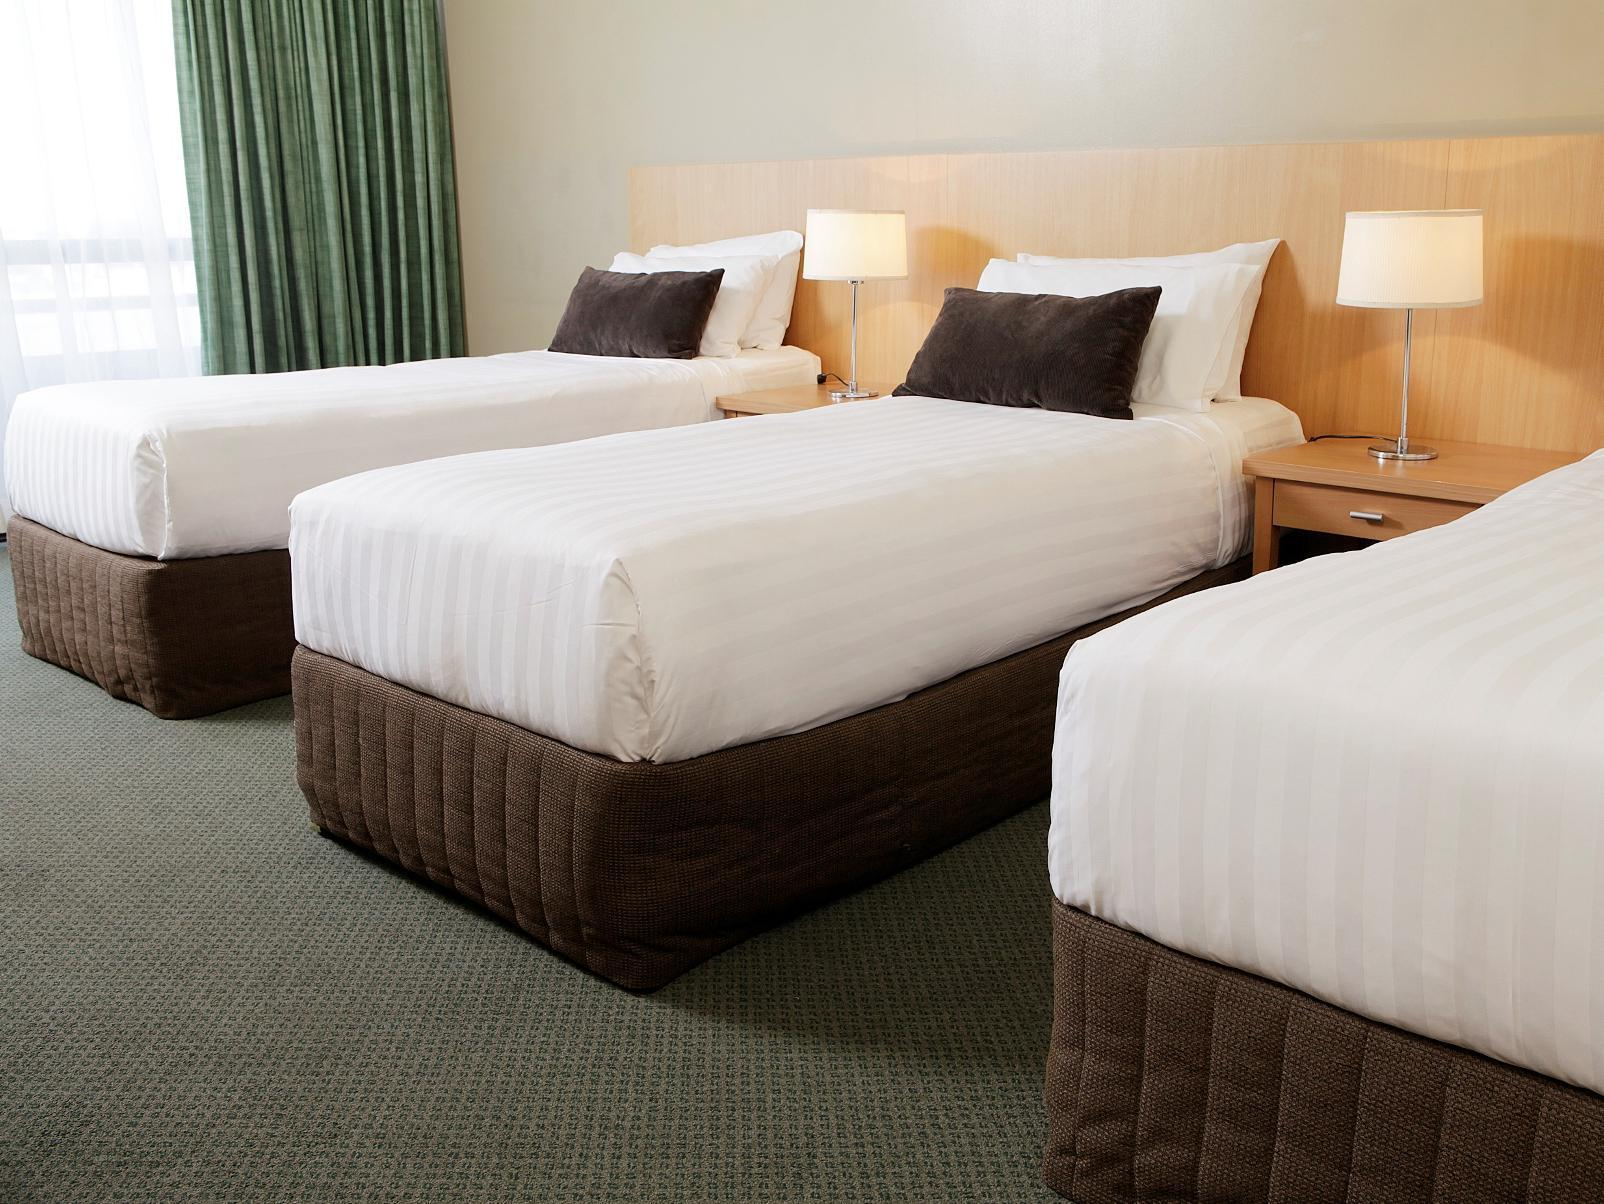 Beds Cairns Best Price On Rydges Plaza Hotel Cairns In Cairns 43 Reviews